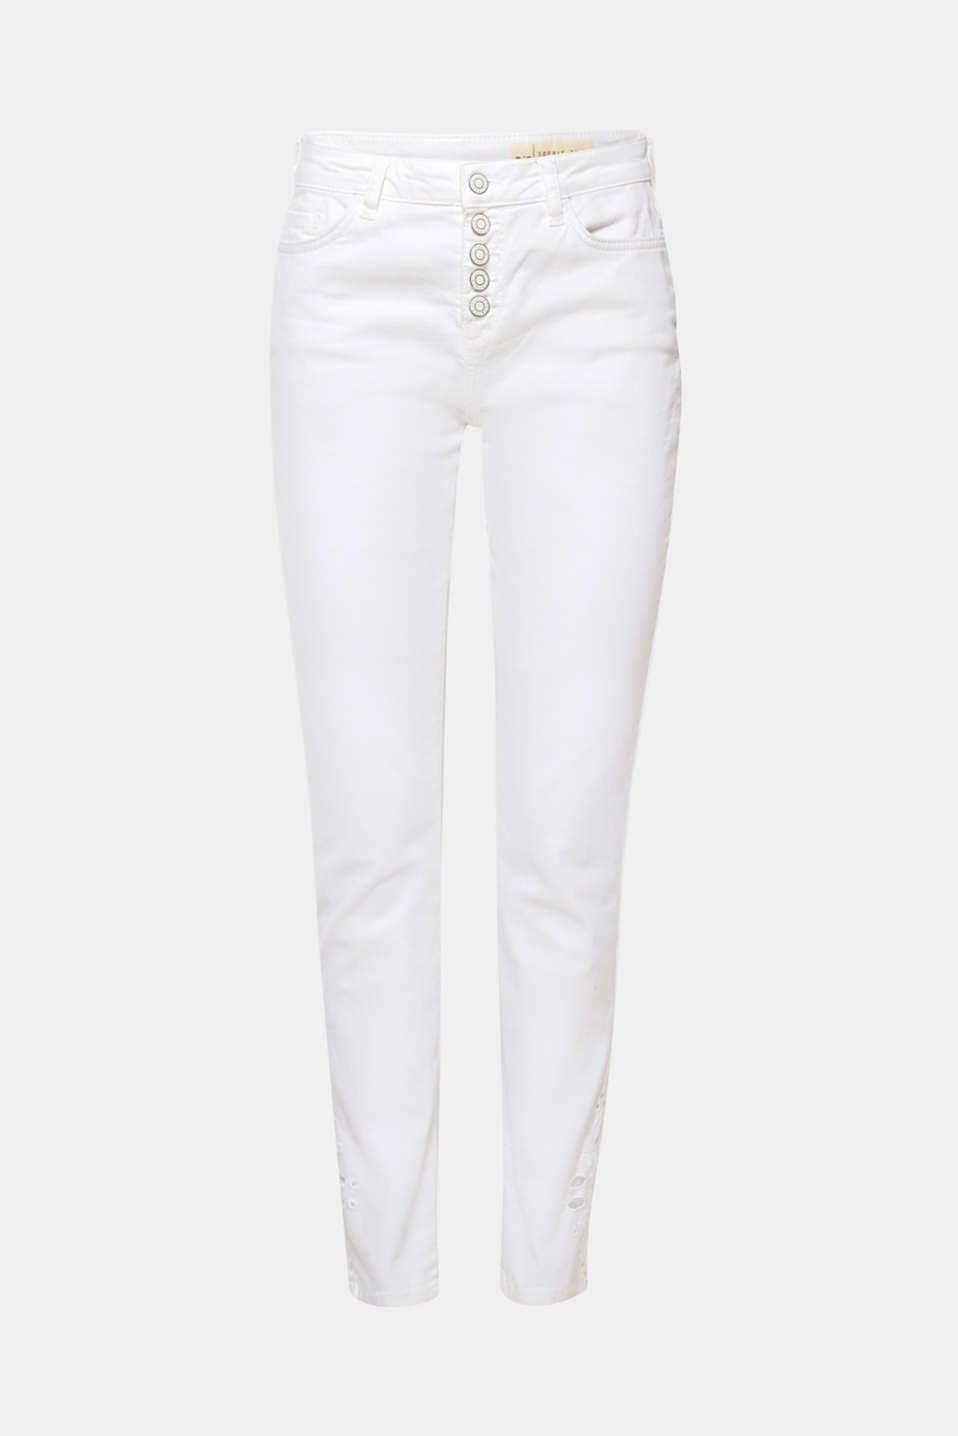 The casual button placket and high-quality broderie anglaise on the outer sides of the leg hems make these white stretch jeans the perfect summer denim style!